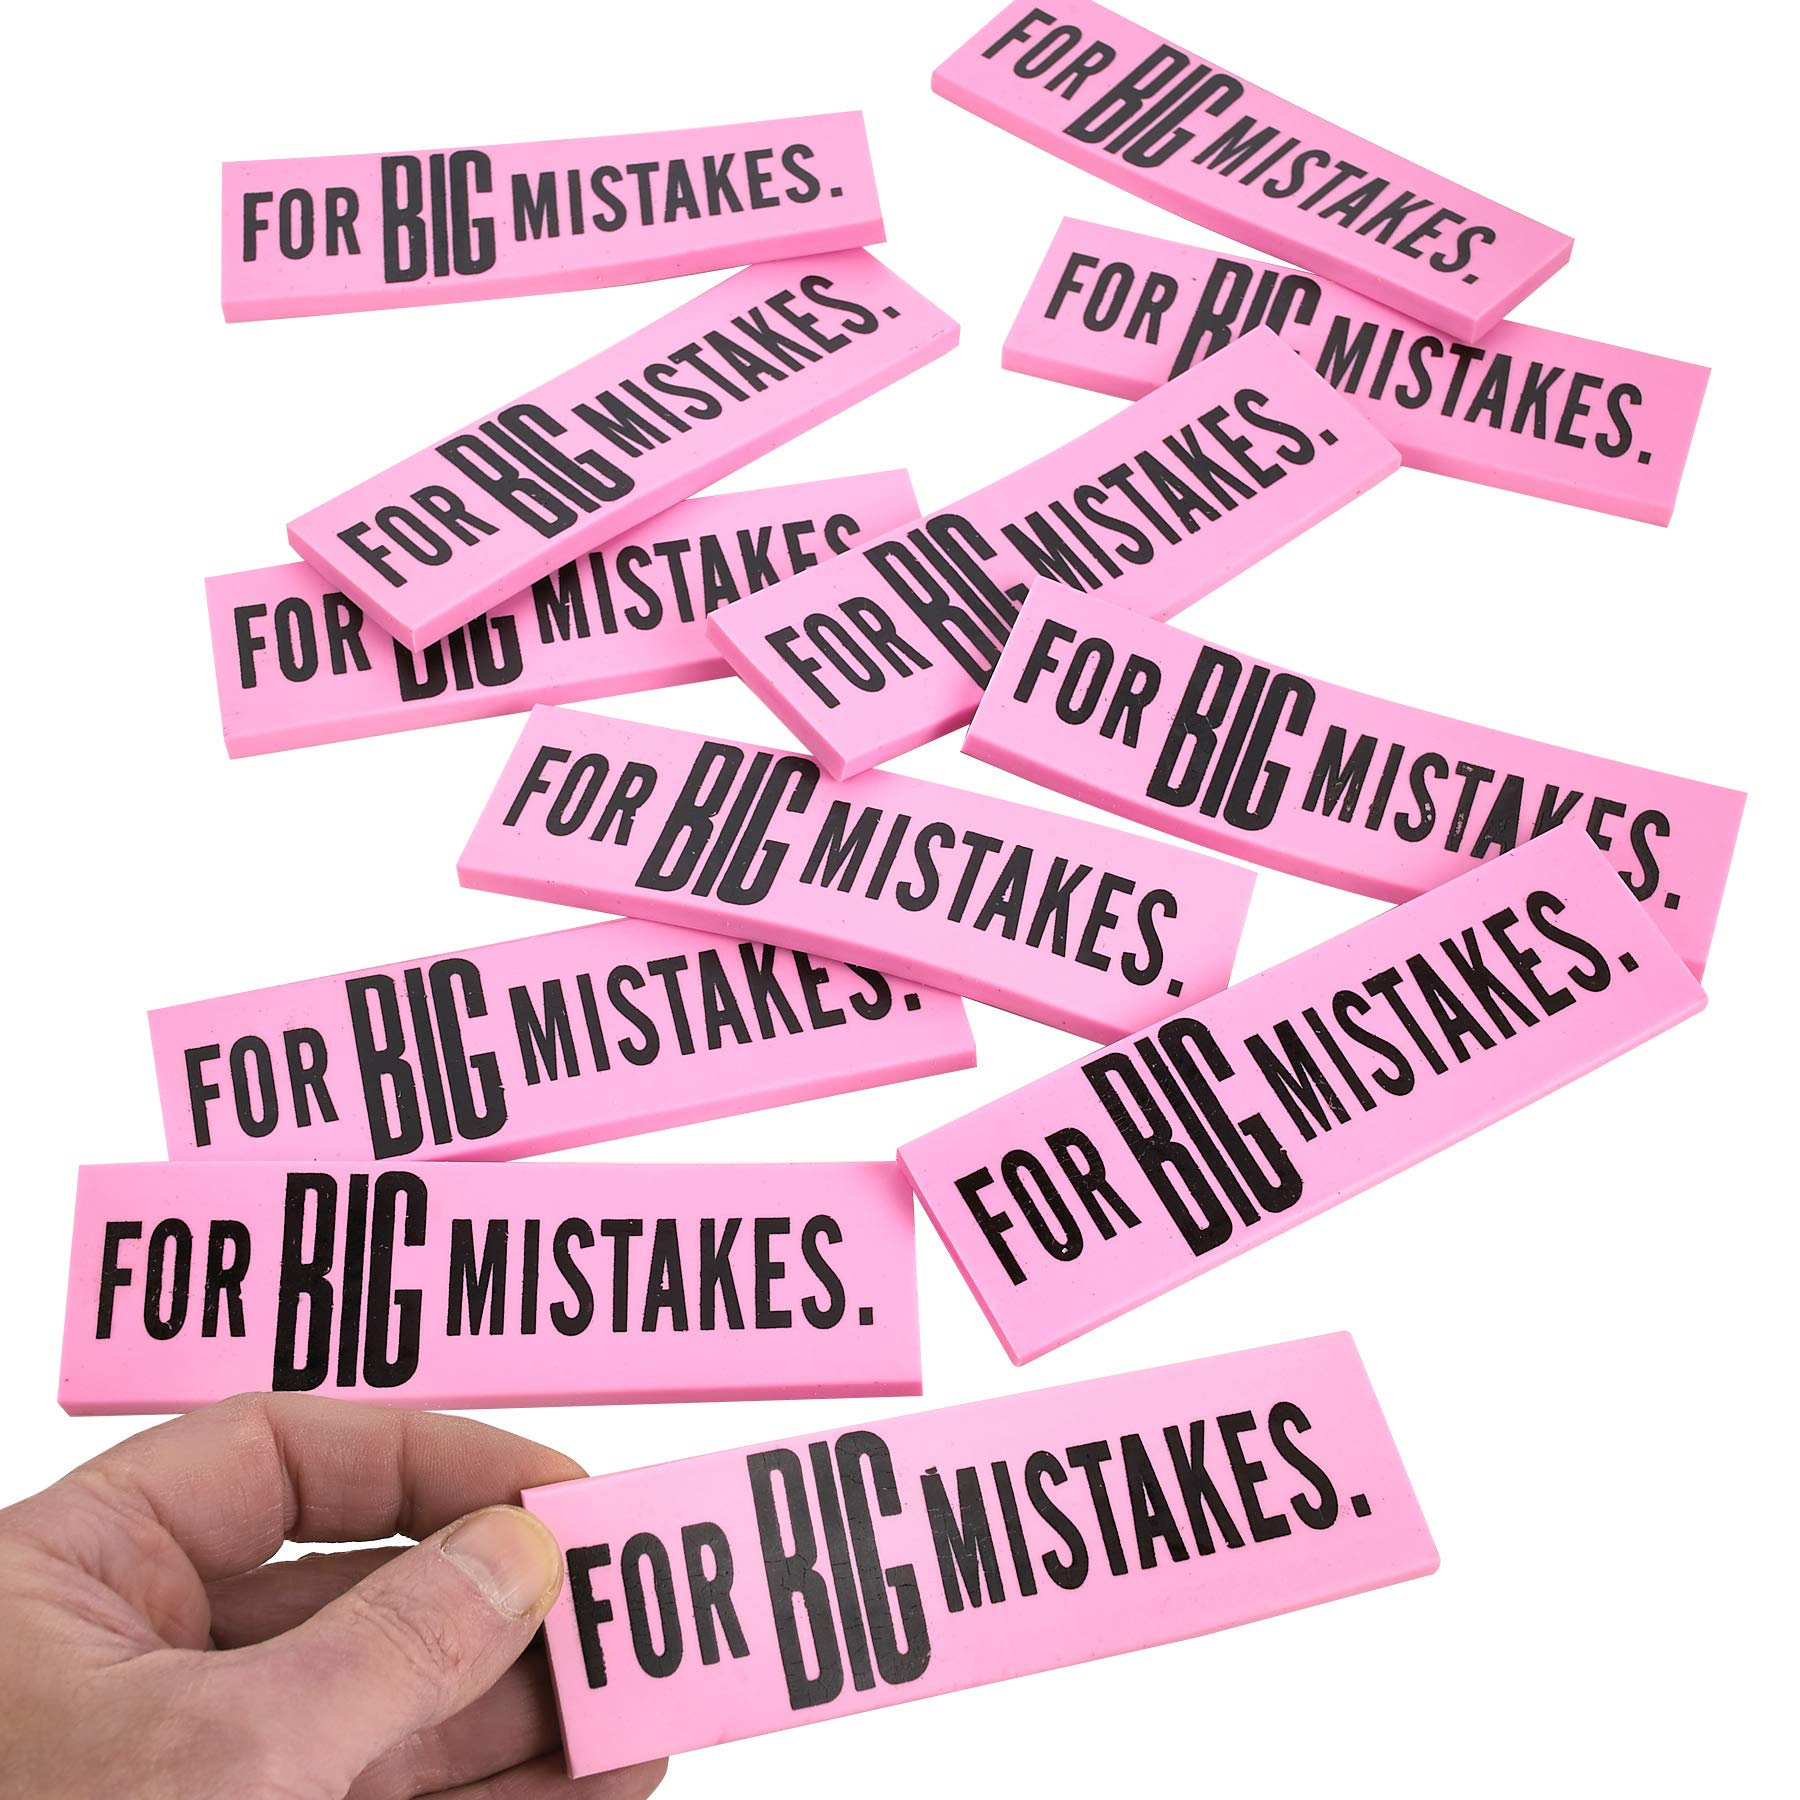 Big Mistake Eraser – 12 Pack Jumbo Eraser – Pencil Eraser School Supplies for Kids – Great for Children on Preschool, Elementary and Middle School by Kicko (Image #3)